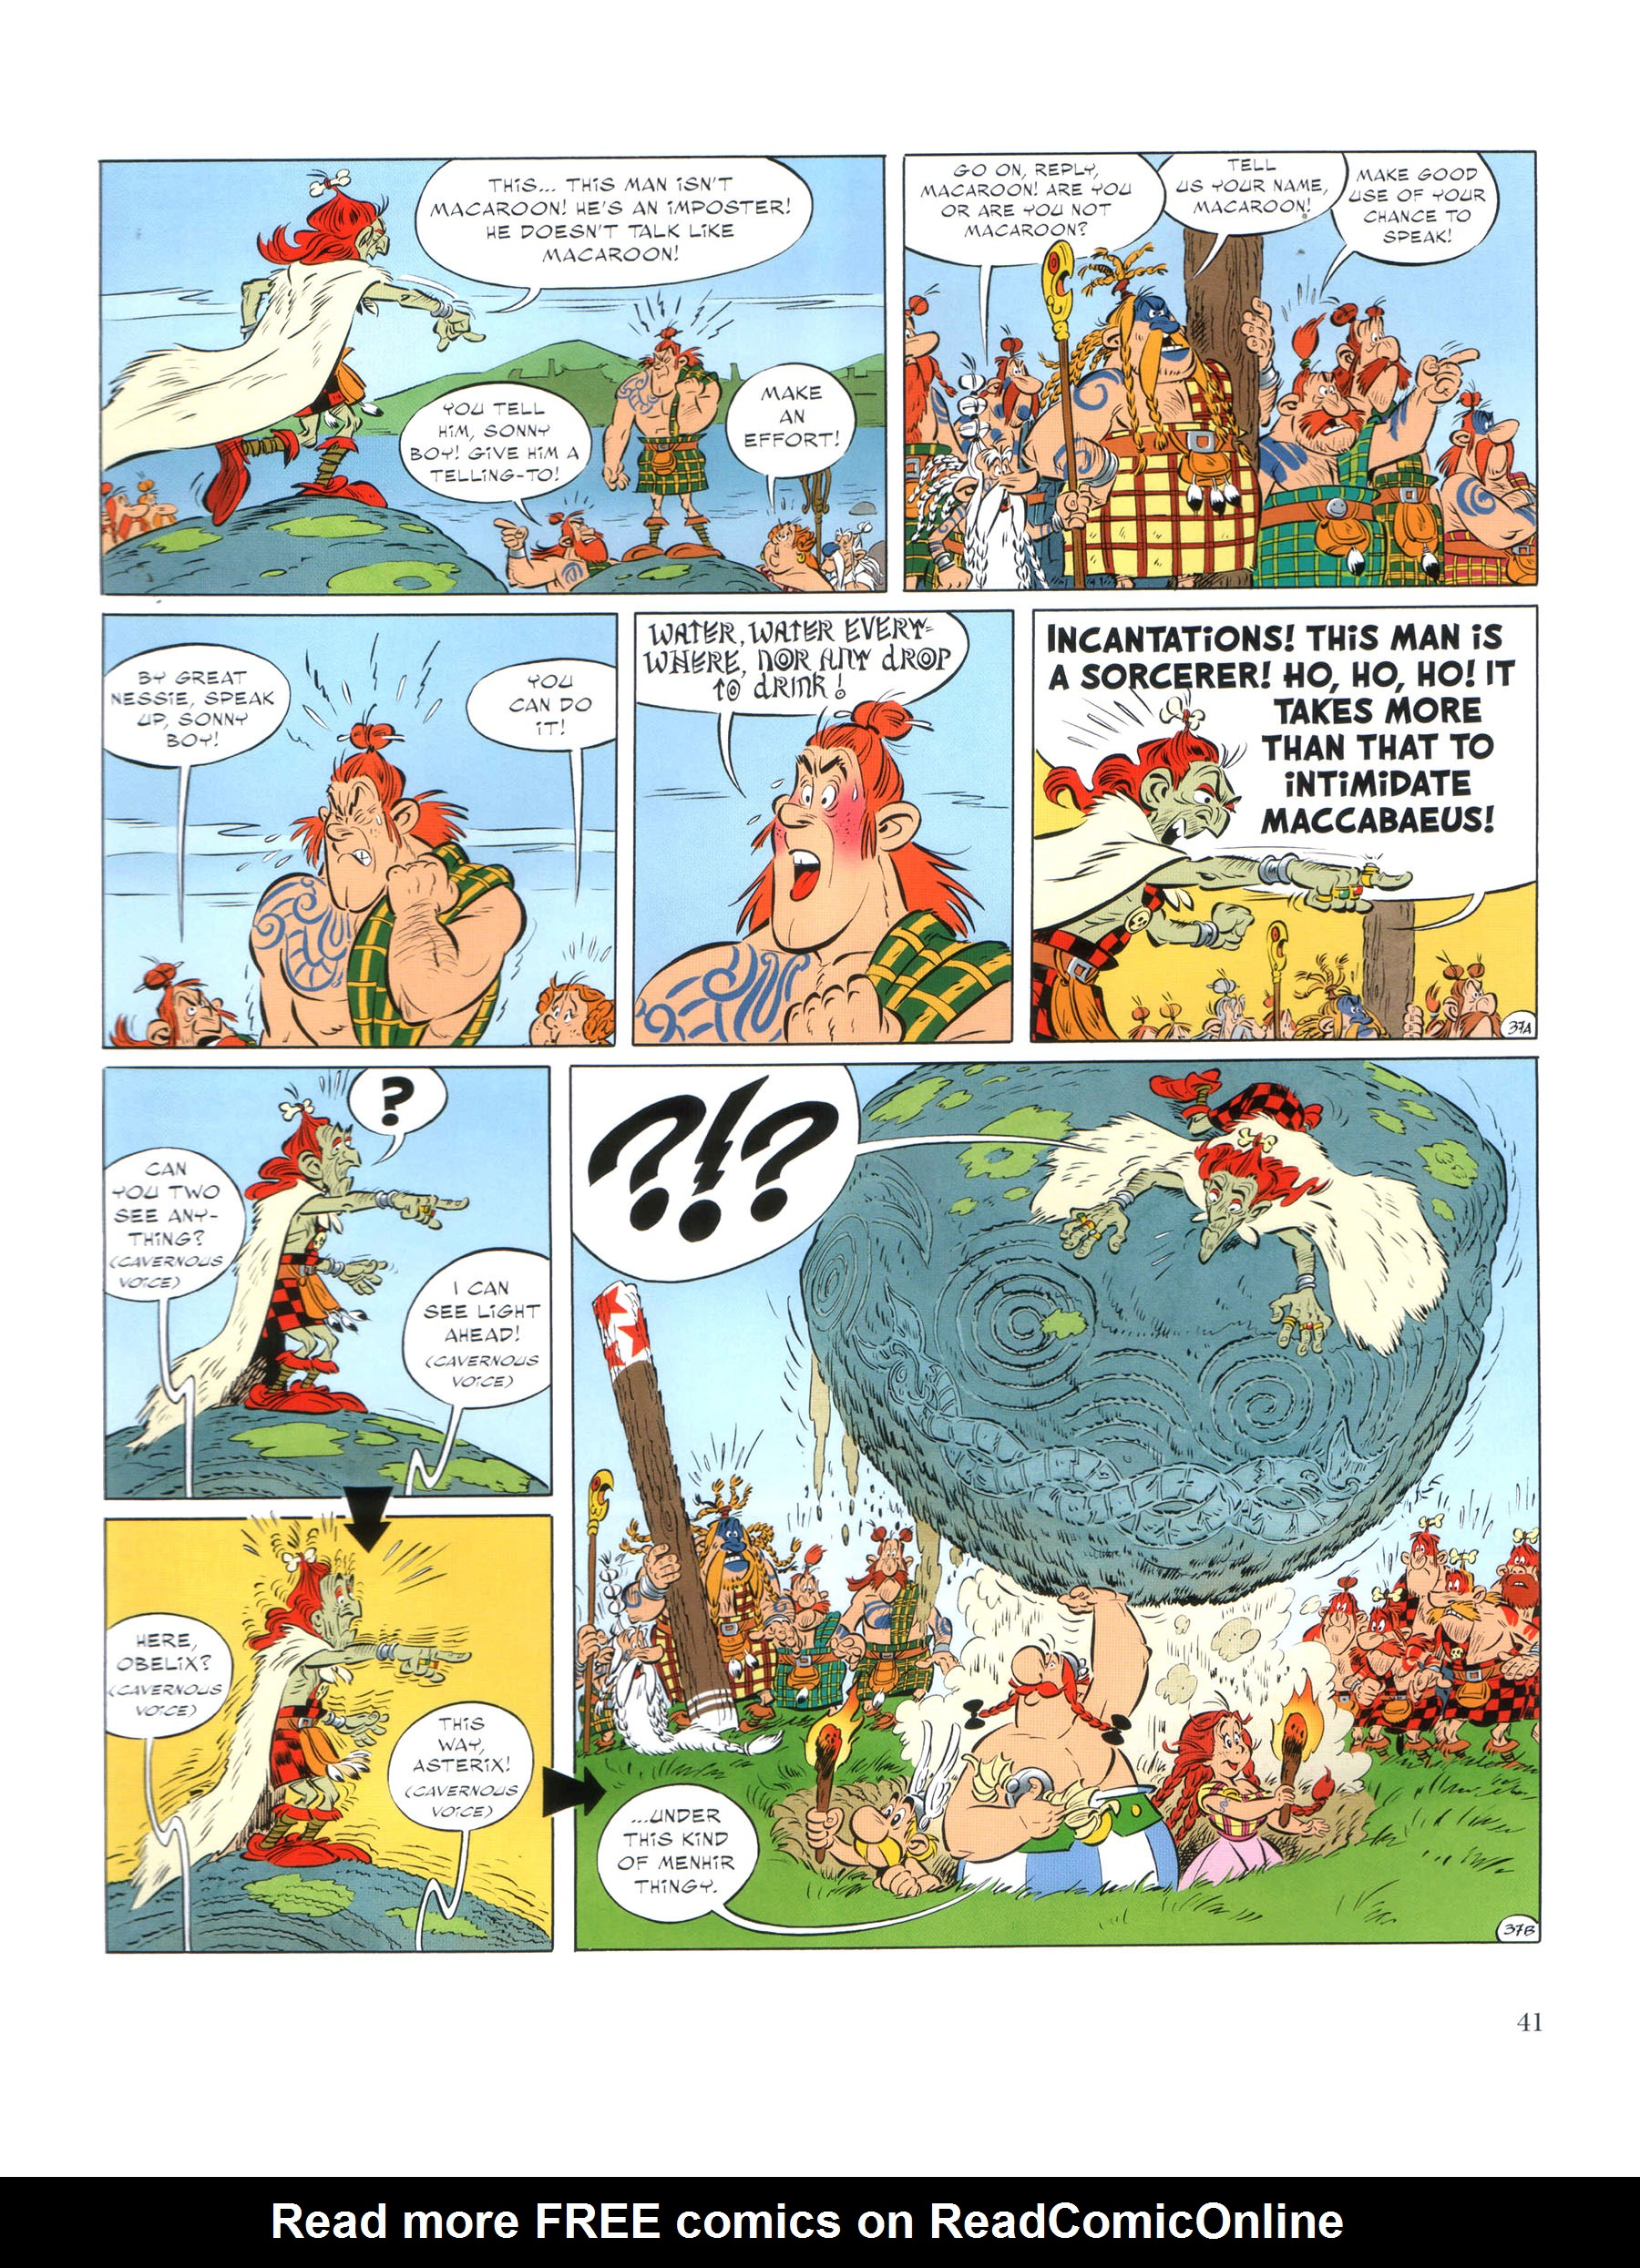 Read online Asterix comic -  Issue #35 - 42